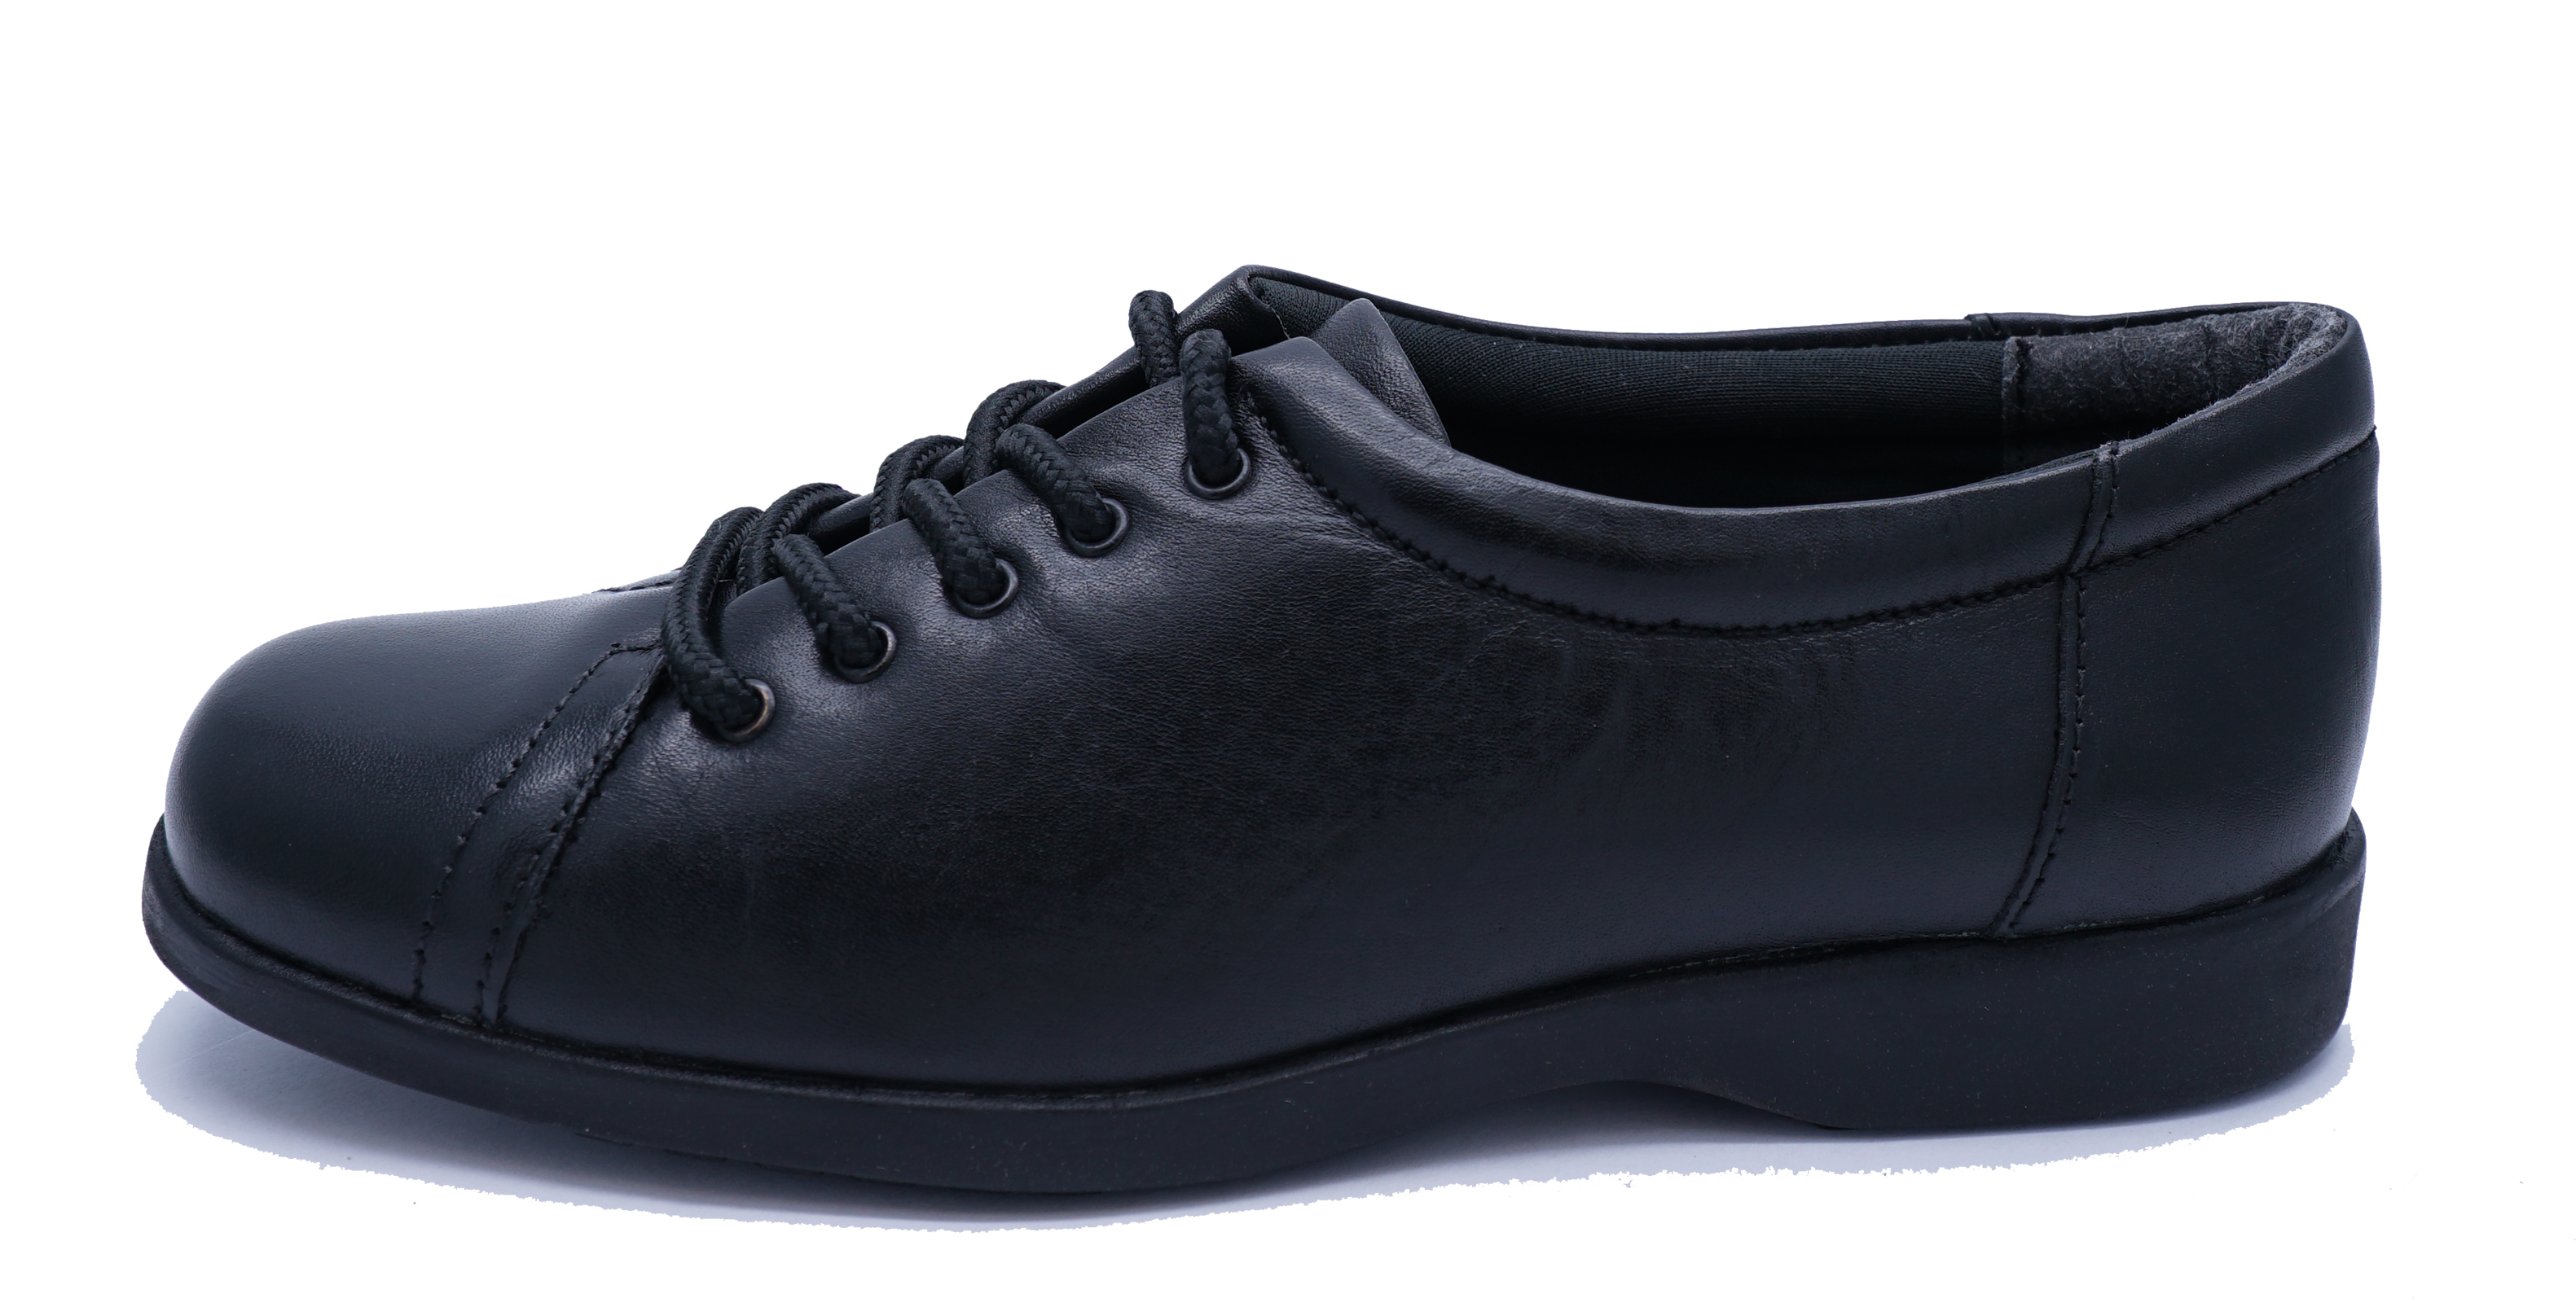 LADIES-BLACK-AMBLERS-LEATHER-LACE-UP-WORK-SCHOOL-SMART-CASUAL-SHOES-SIZE-4 thumbnail 5